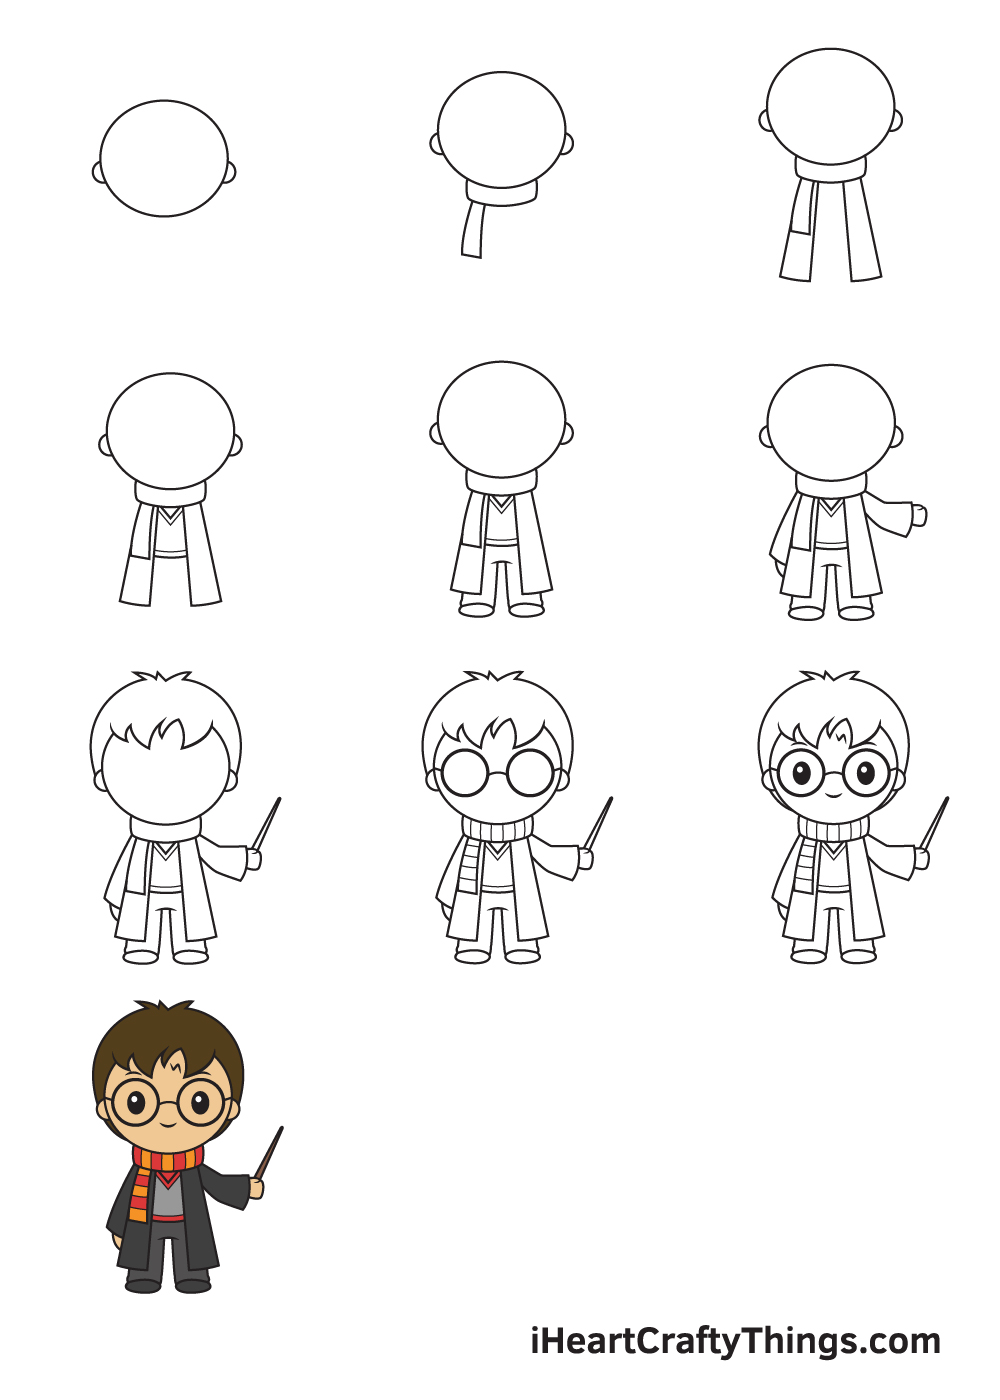 Drawing Harry Potter in 9 Easy Steps